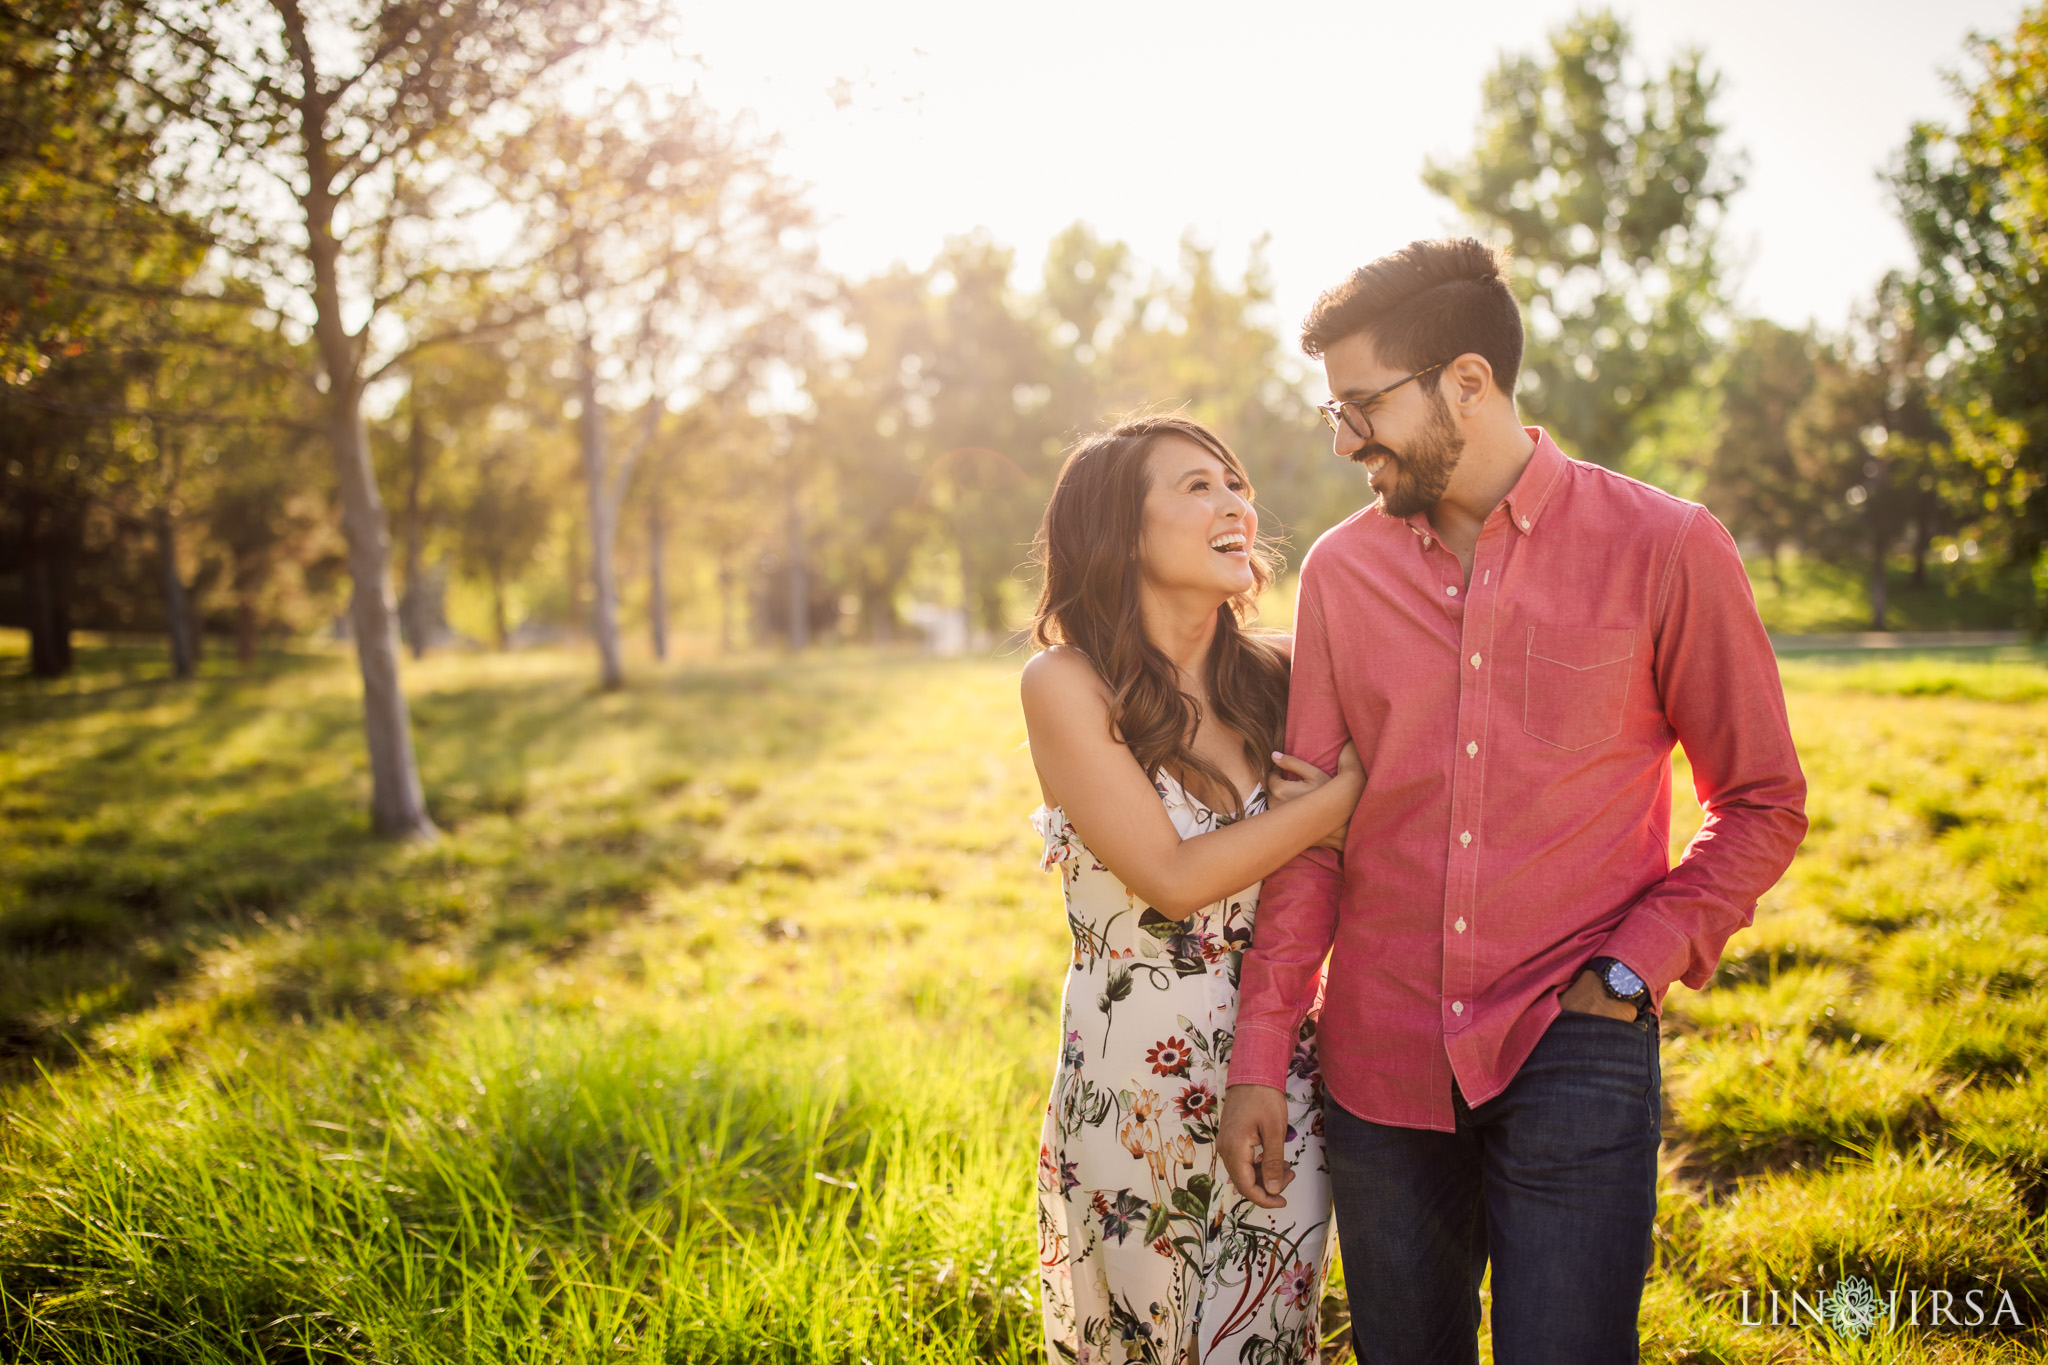 011 jeffrey open space engagement photography